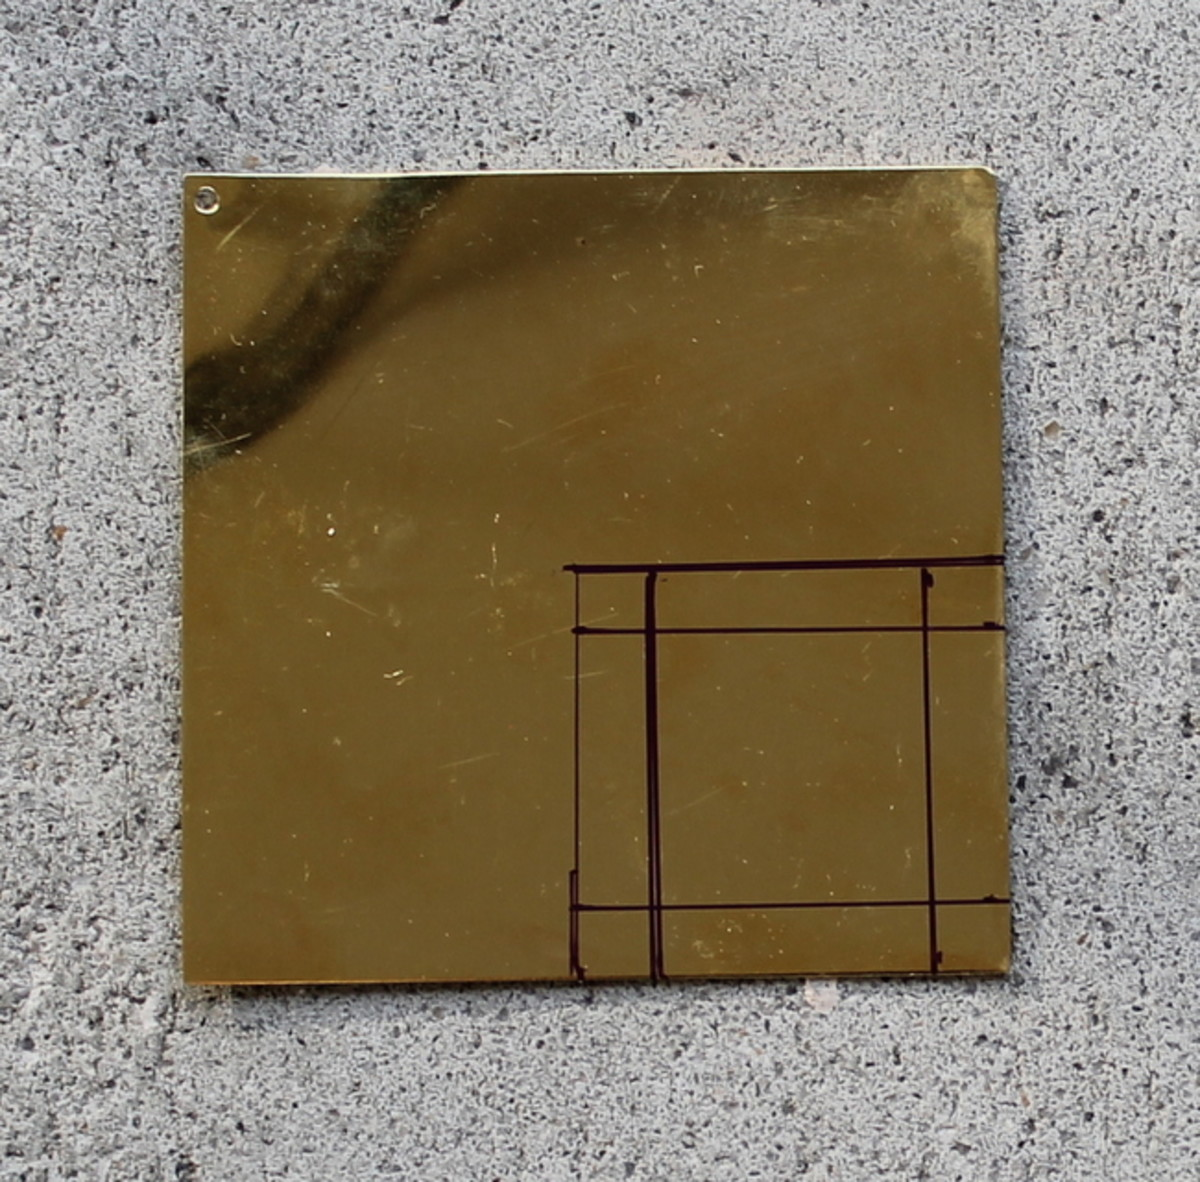 "Then make a smaller, 1"" square inside the 1.5"" square."